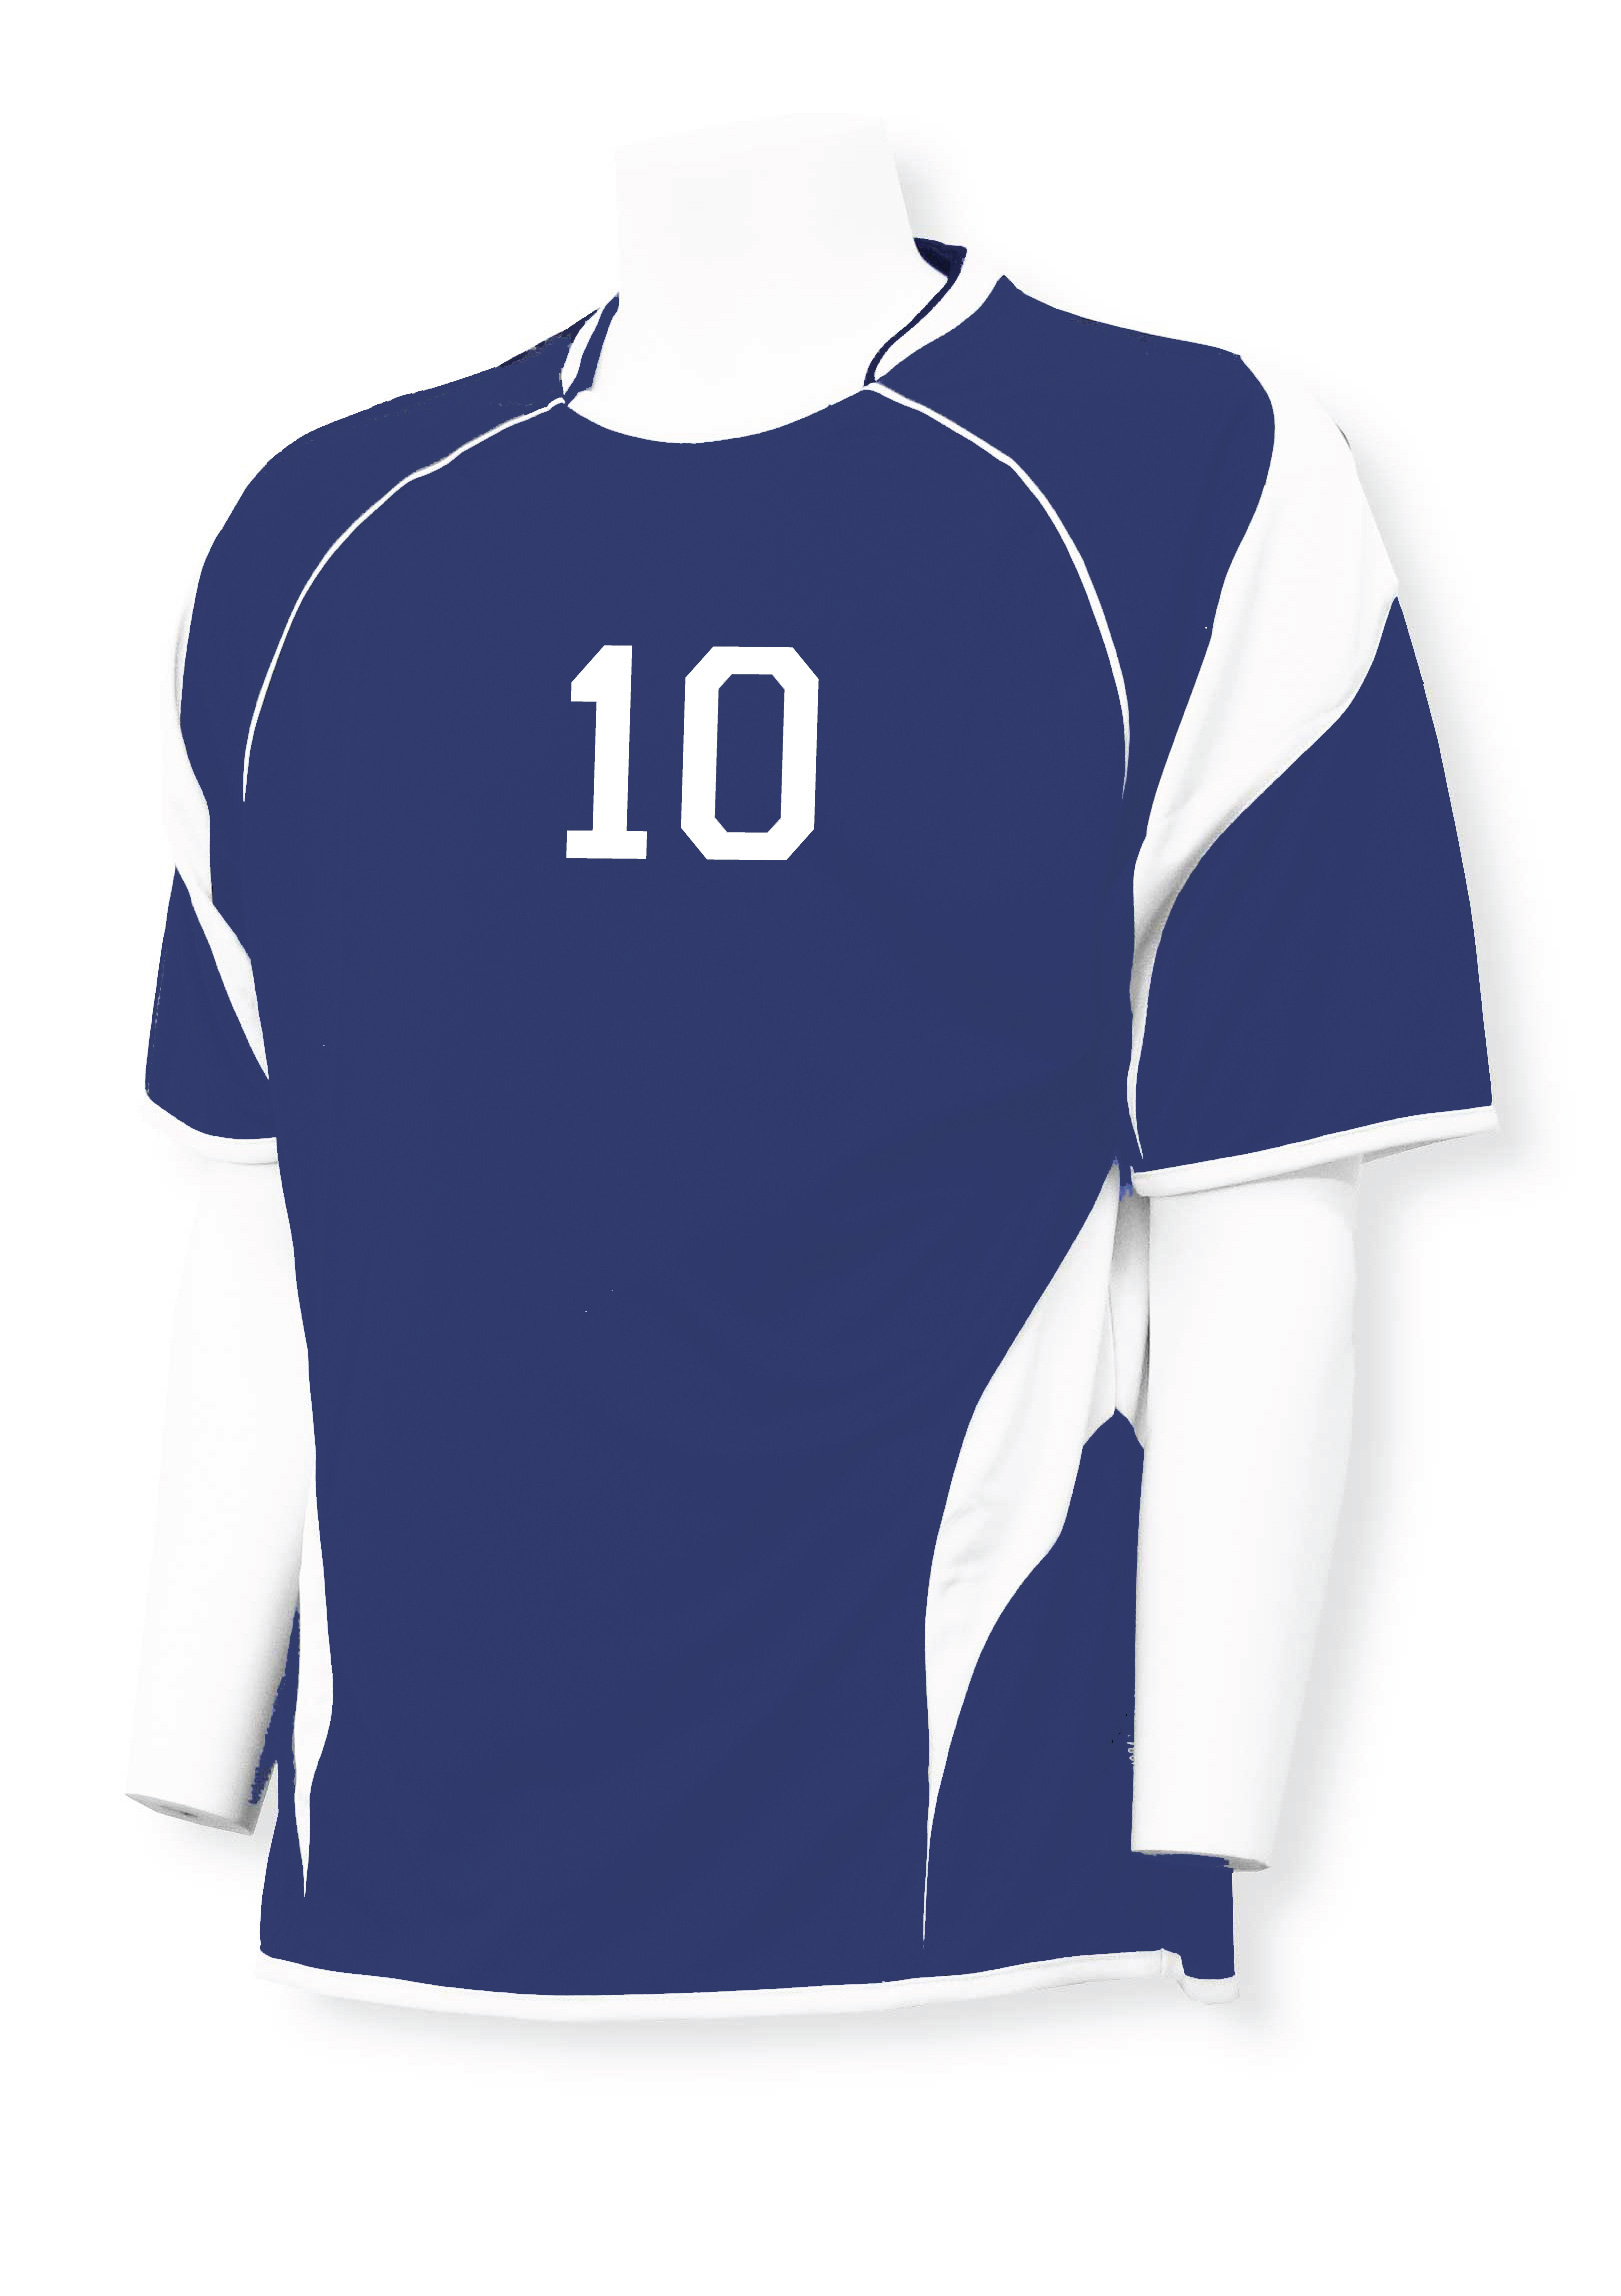 Soccer jersey personalized with name and number by Code Four Athletics